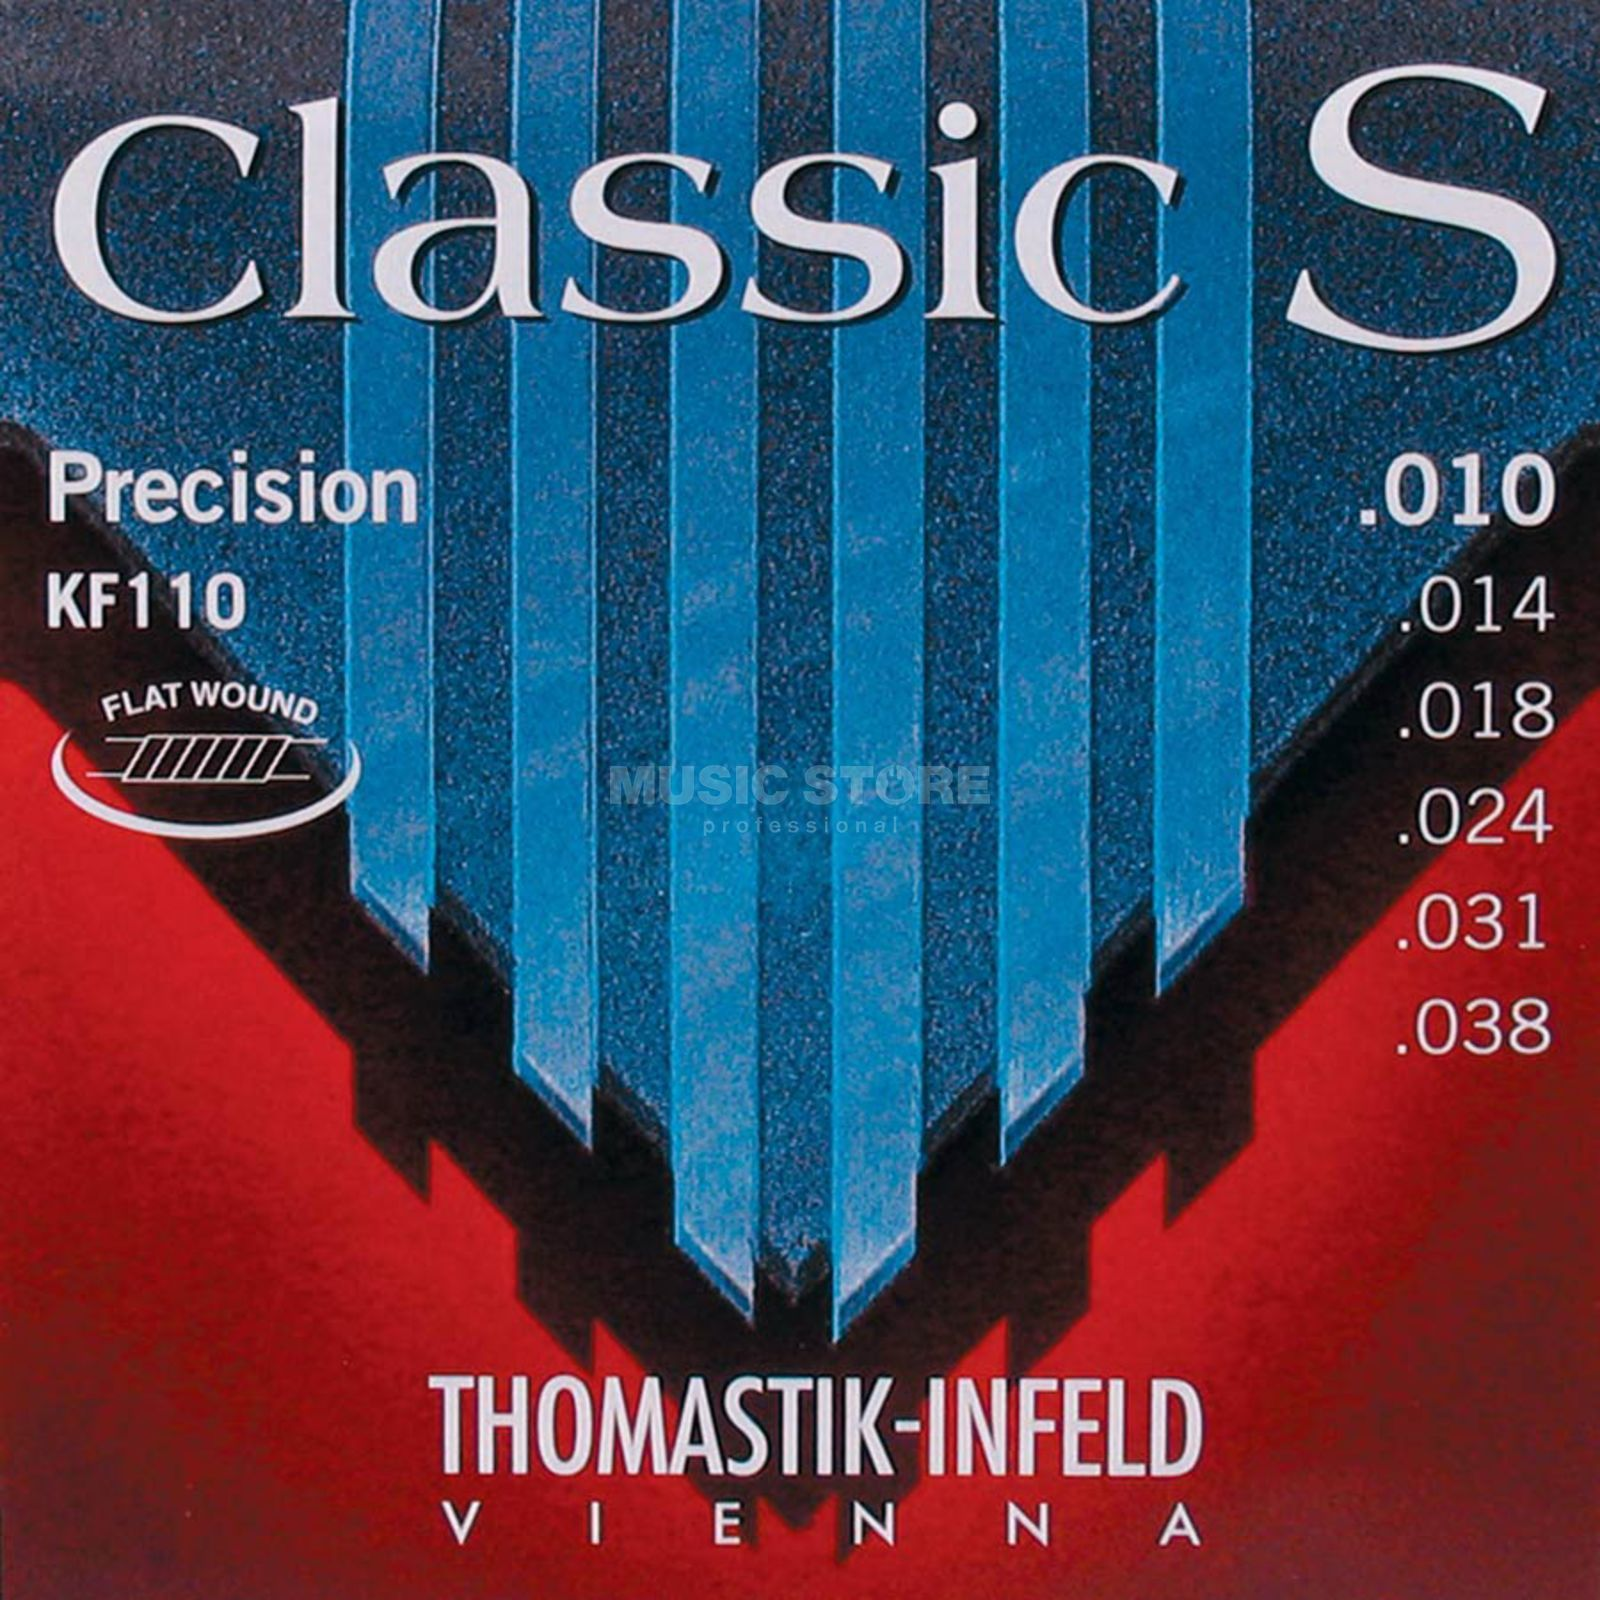 Thomastik Classic S Strings,  KF110  Precision, Flat Wound Product Image